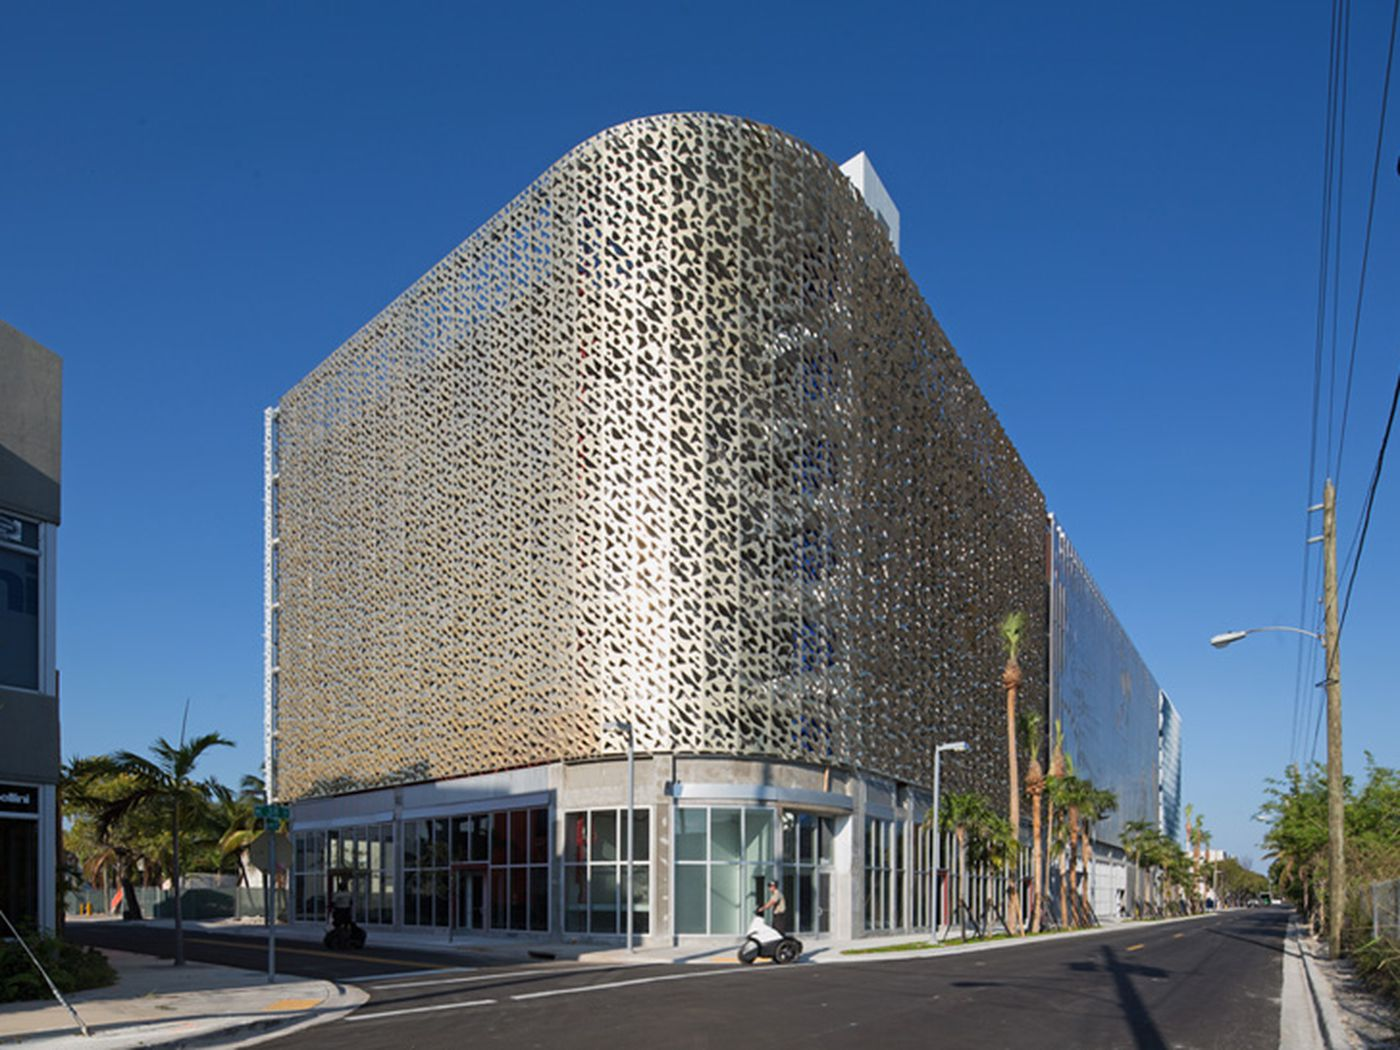 The Design District's Silvery City View Garage is Opening Soon - Curbed Miami